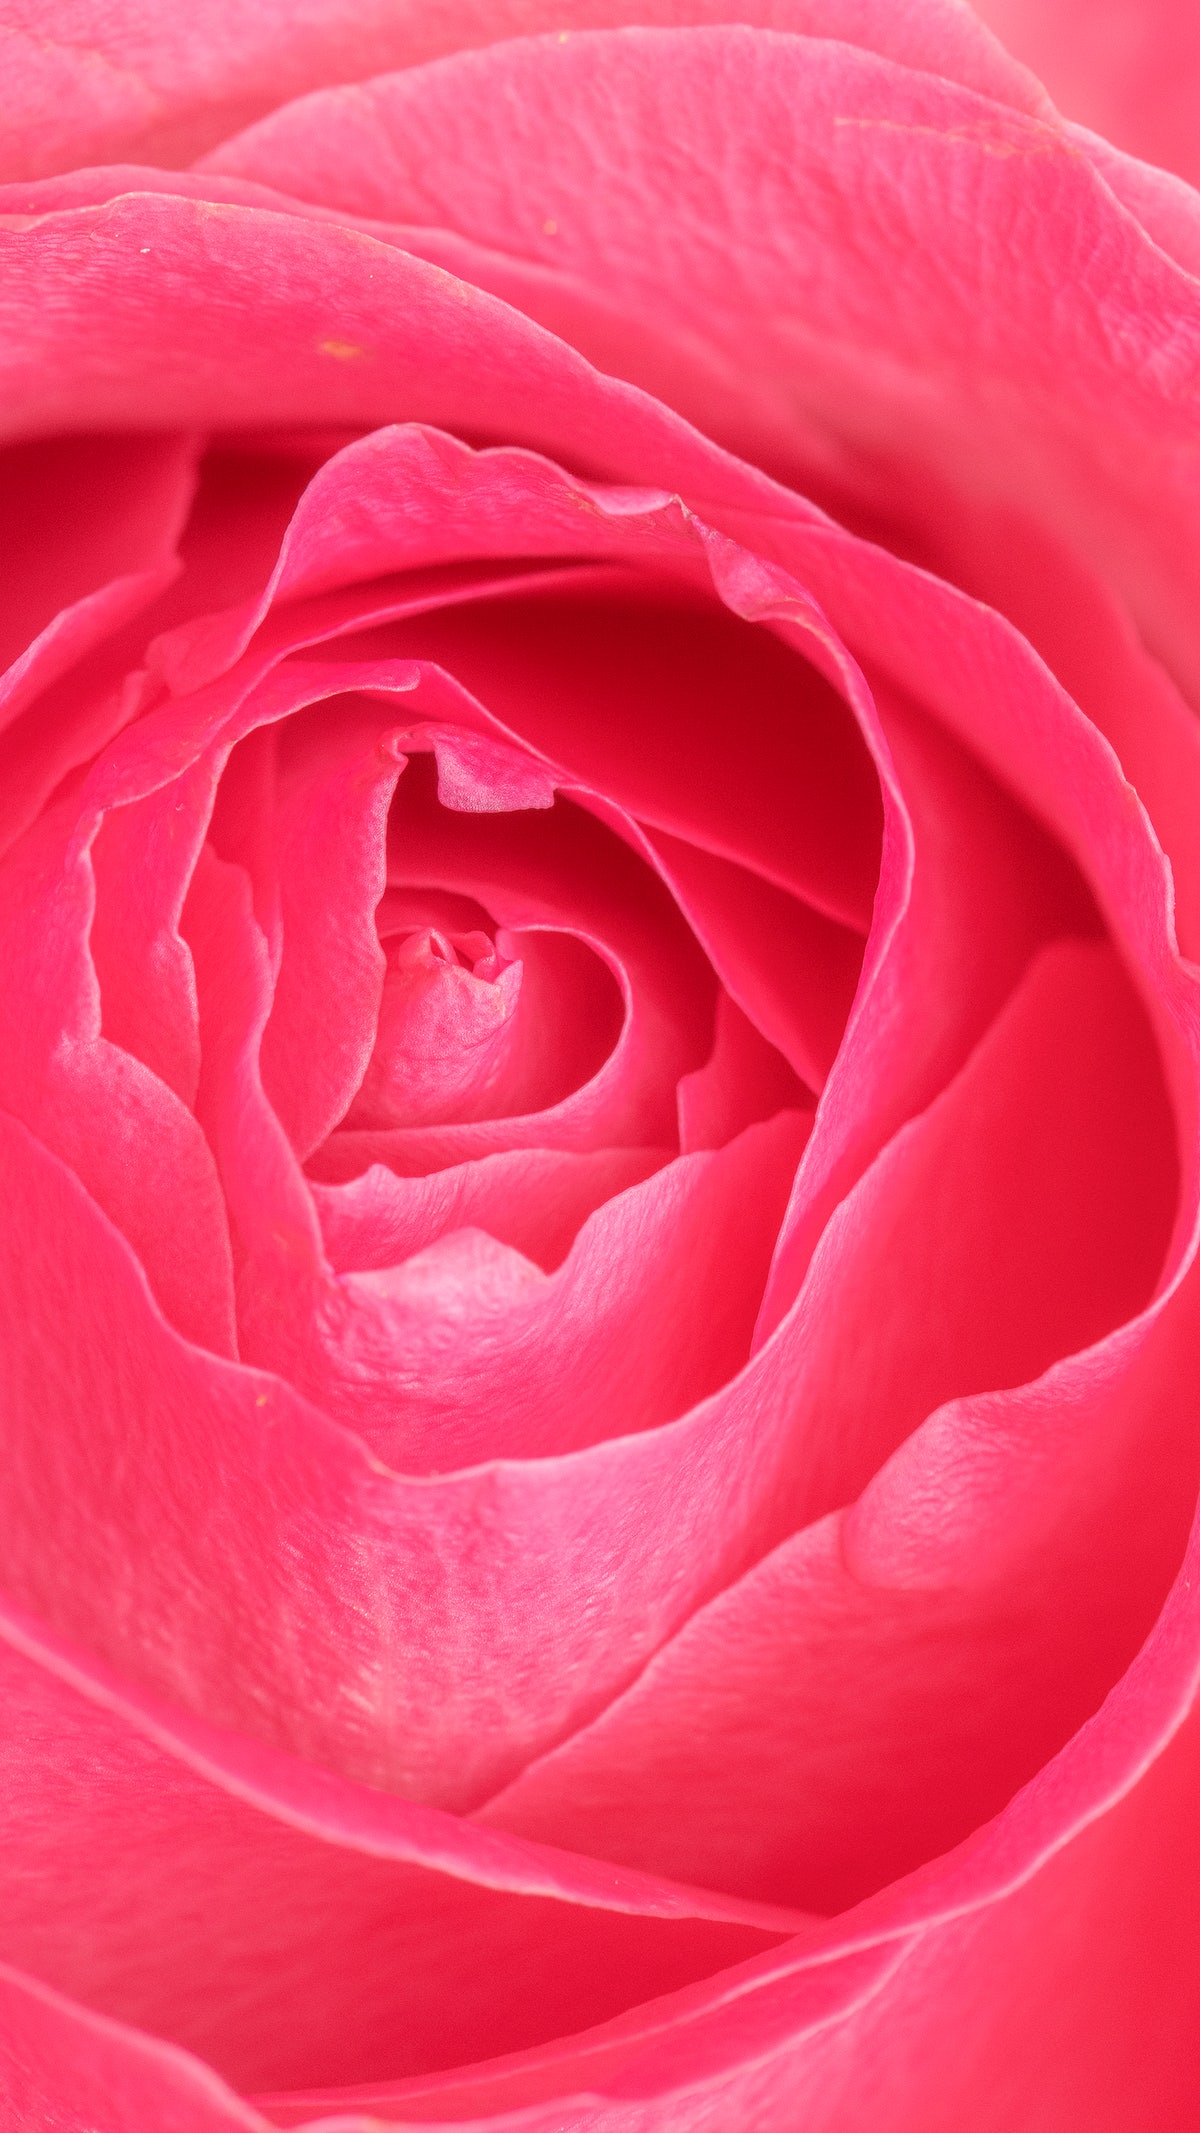 Vibrant Pink Rose Petals Macro Photography Mobile Wallpaper Royalty Free Photo 2279826